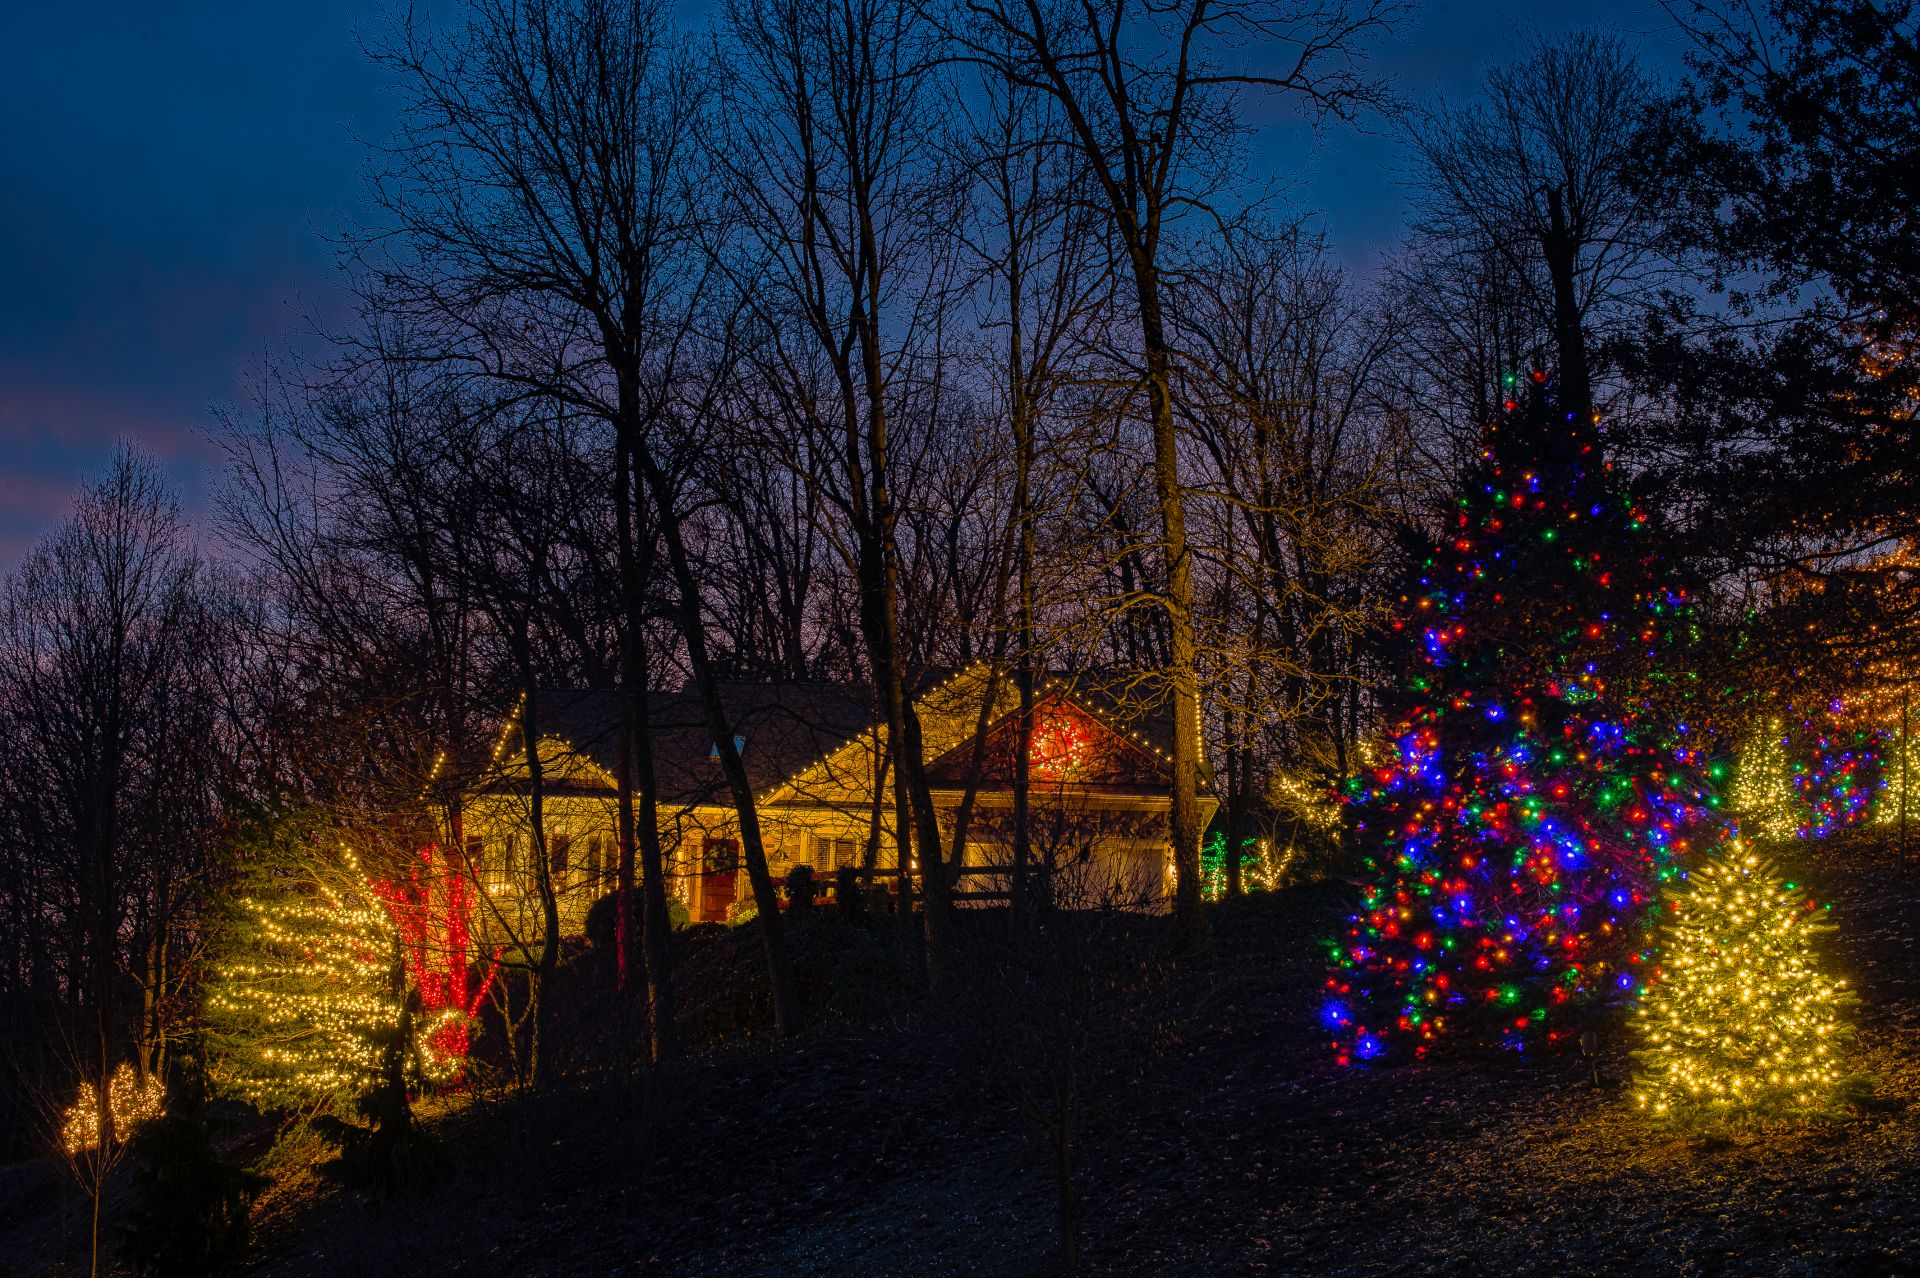 Seth_Maurer_Landscaping_Holiday_Decorating_Property_001_002